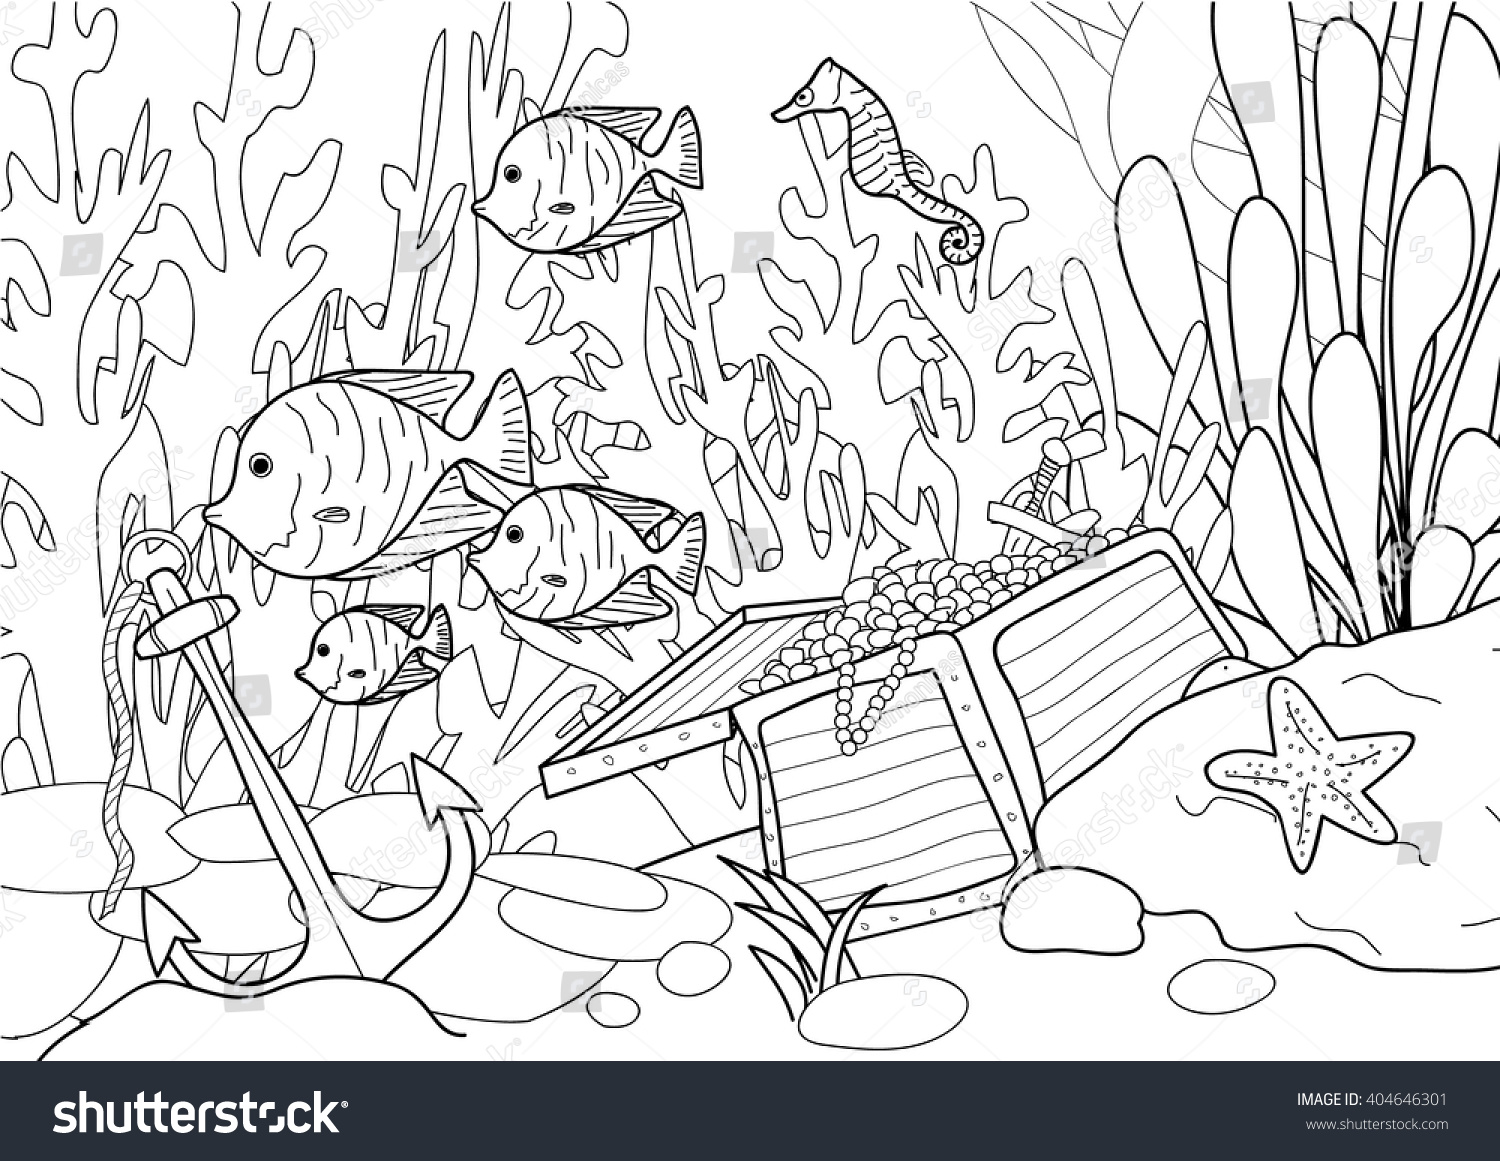 Coloring Page Adult Treasure Under Sea Stock Vector 404646301